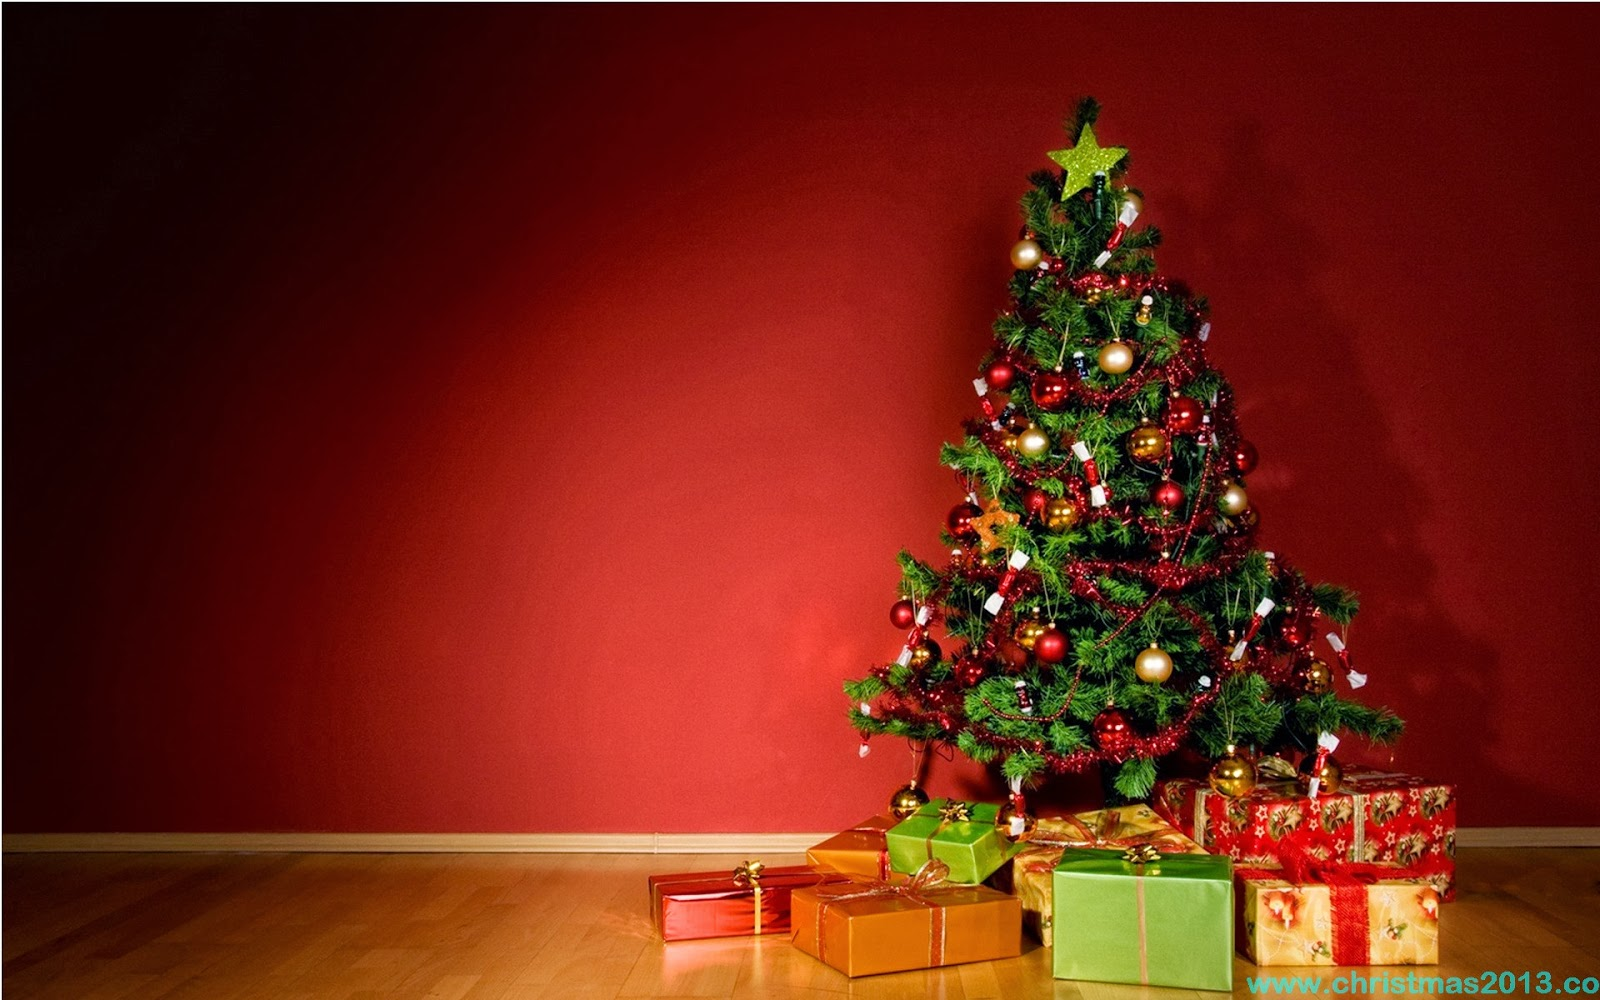 Christmas Tree Wallpaper for Desktop | HD wallpapers 282